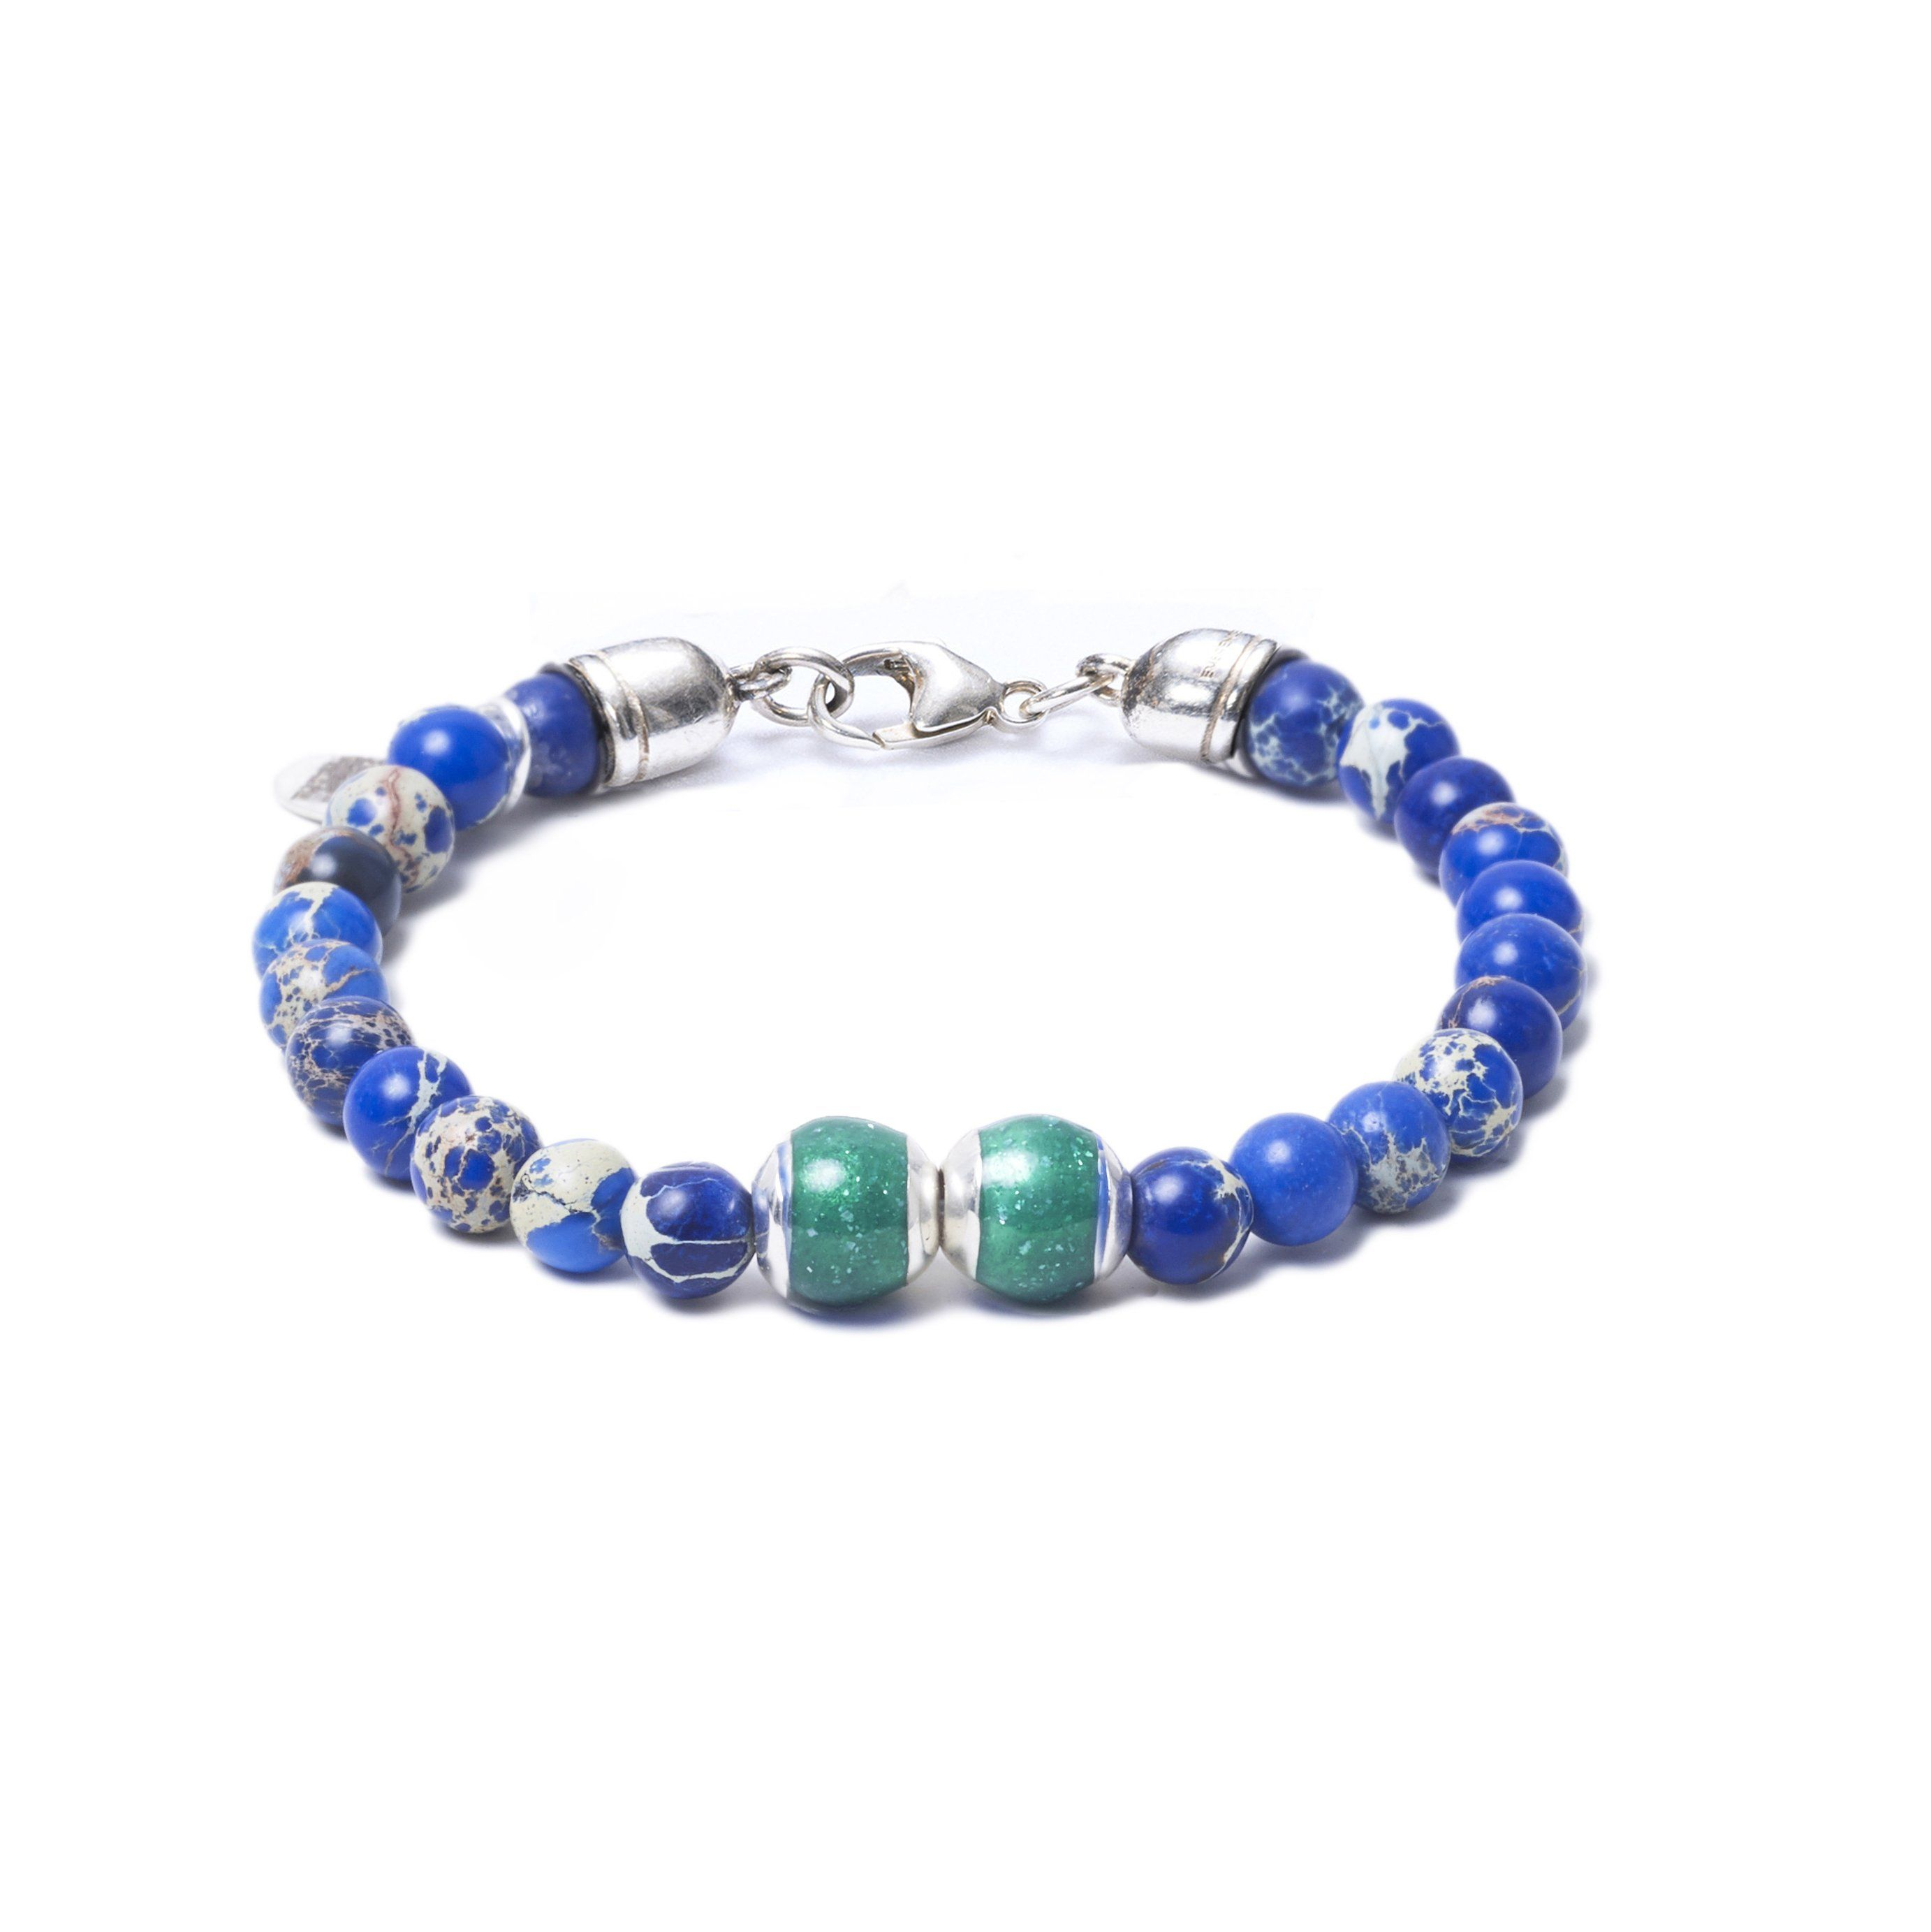 Blue Sea Jasper, Two Everence Beads everence.life Green Lobster Claw 7